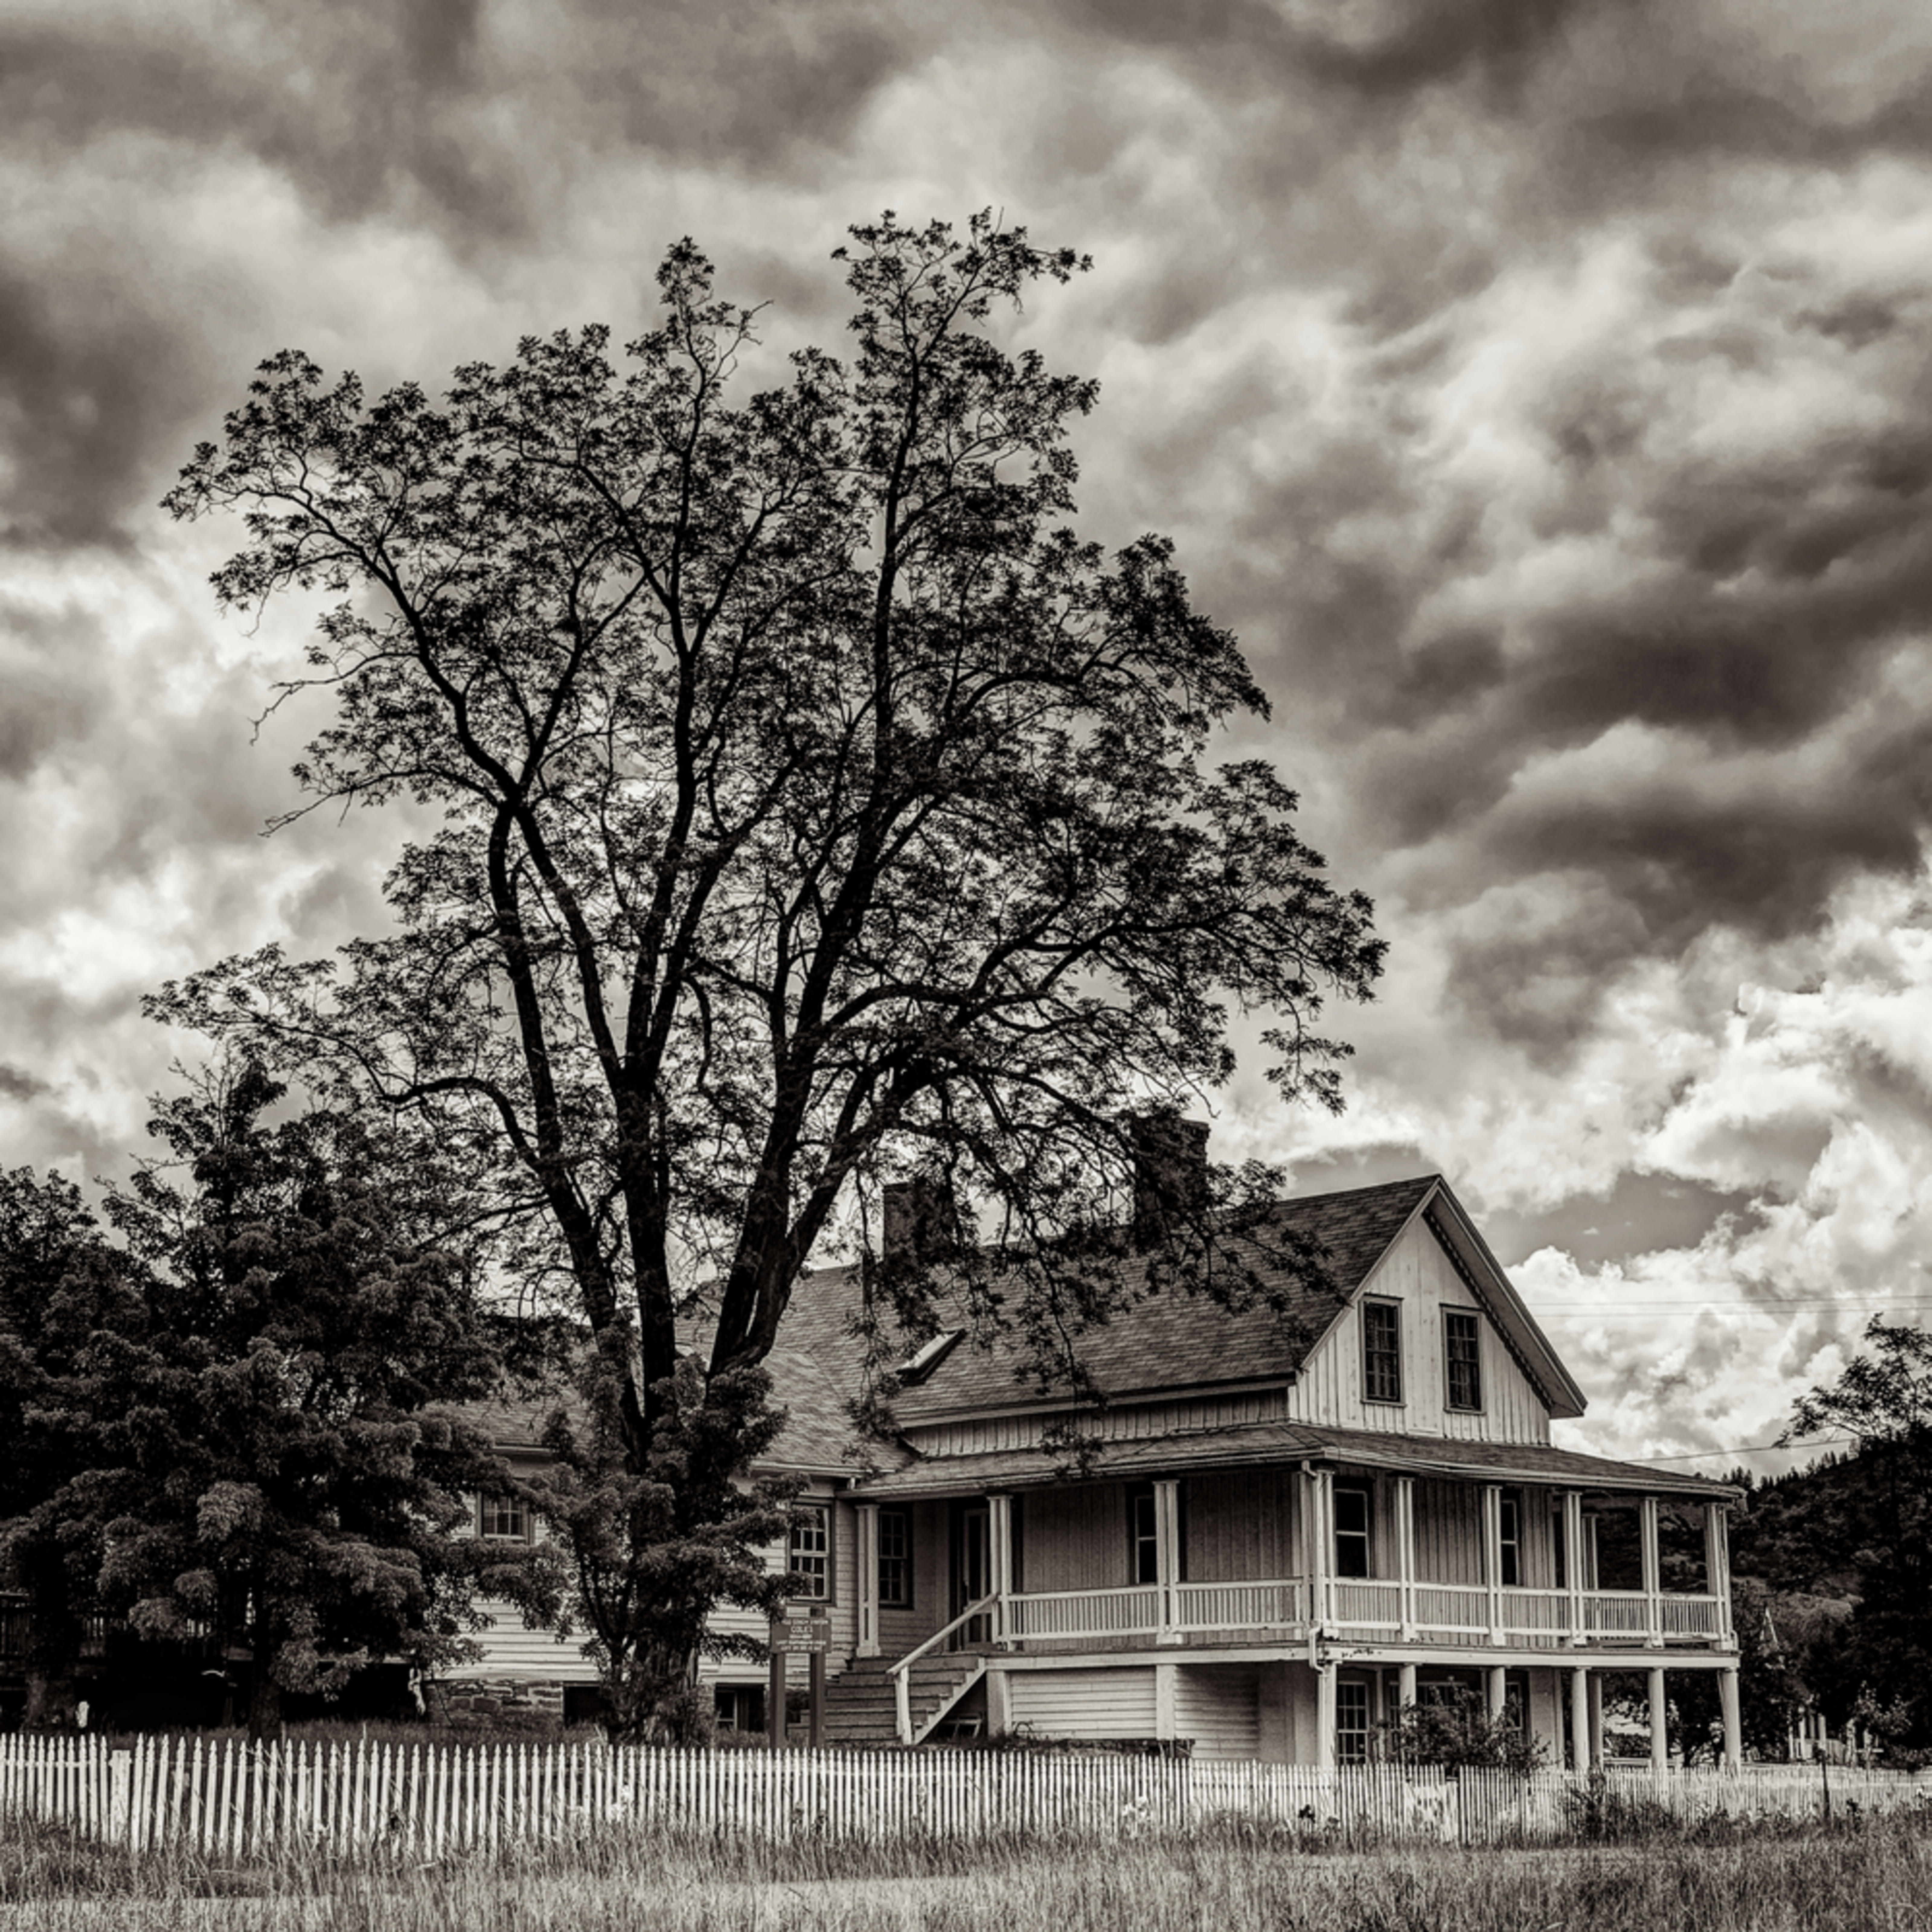 Northern california haunting house black and white q9tkle